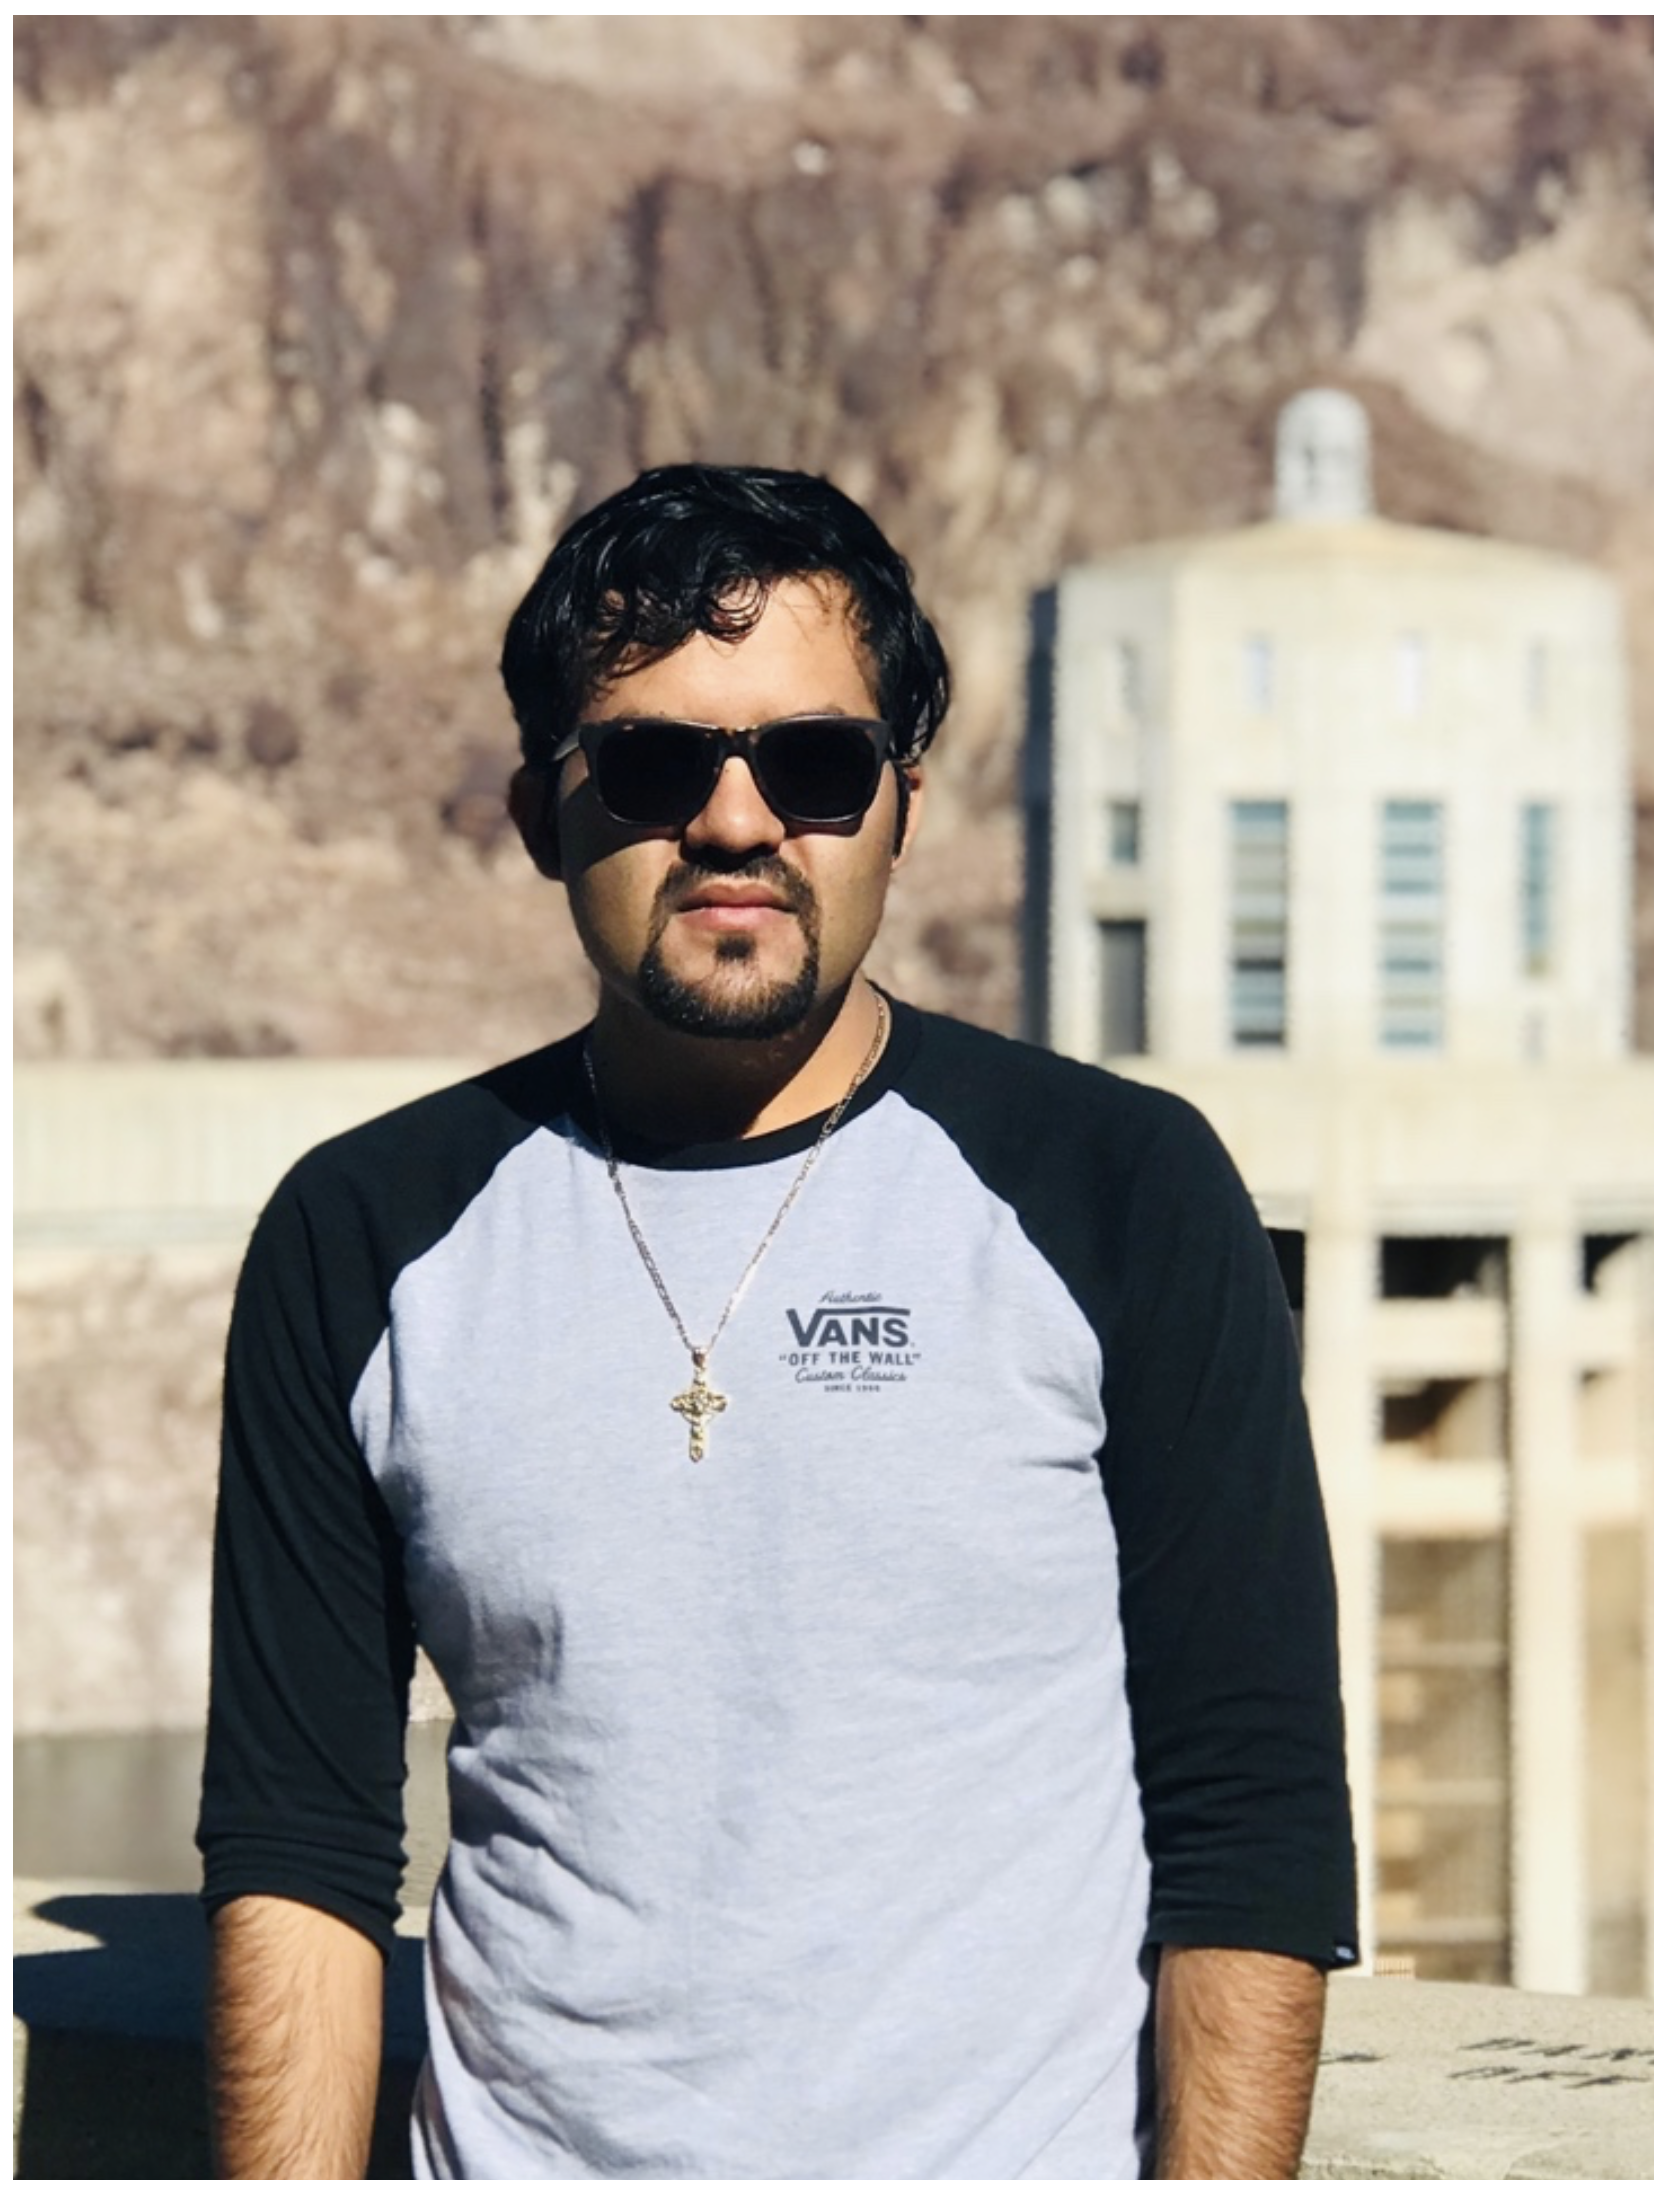 Noel Mireles - Noel Mireles graduated as class salutatorian from William B. Travis High School in 2014 when he was awarded the UUMC scholarship. He then went off to pursue a Bachelor's of Science in chemistry at Texas State University and graduated with honors in May of 2018. After graduating, Noel decided to pursue a Doctor of Philosophy in chemistry at Texas A&M University and has now successfully completed his first year of graduate school. Noel has hopes of working as a material science engineer with a focus in semi-conductors and has plans to become an entrepreneur with the help of his family.